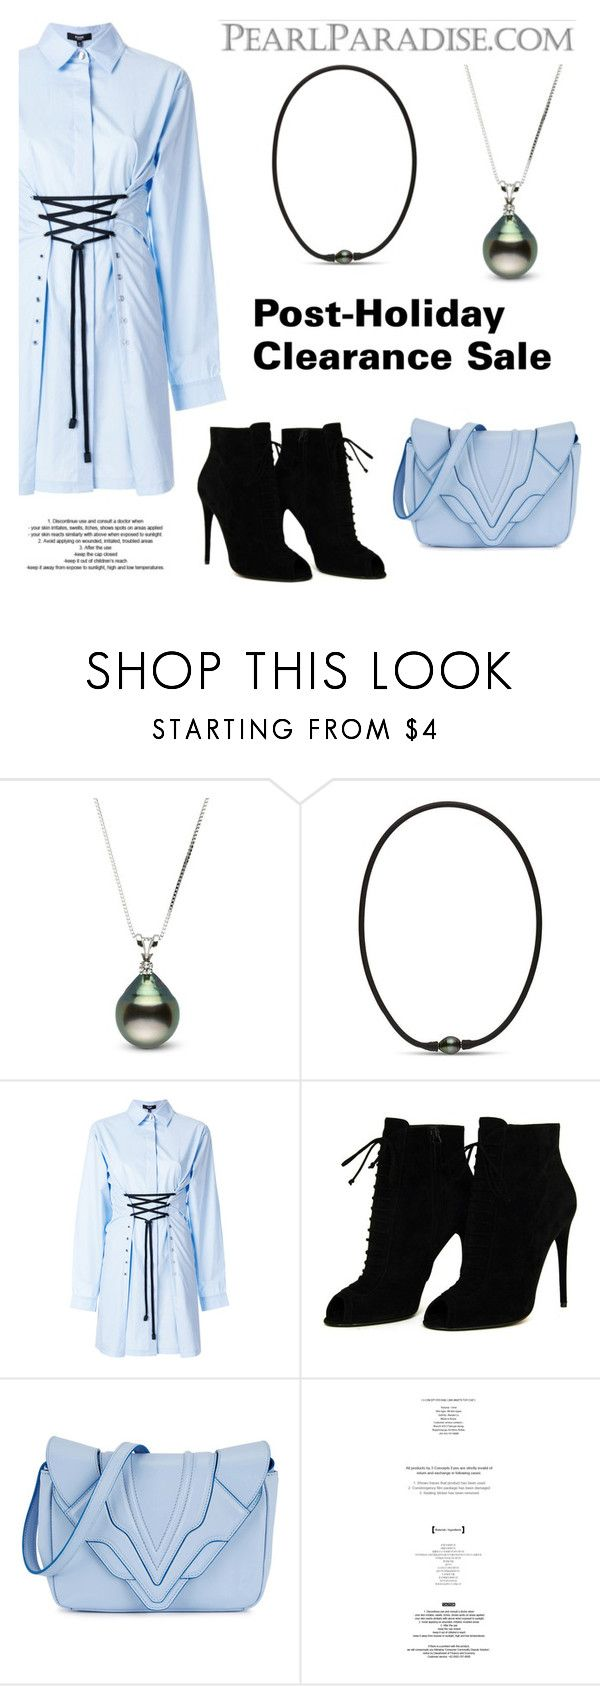 """""""Post-Holiday Clearance Sale"""" by pearlparadise ❤ liked on Polyvore featuring Versus, Tom Ford, Elena Ghisellini and StyleNanda"""